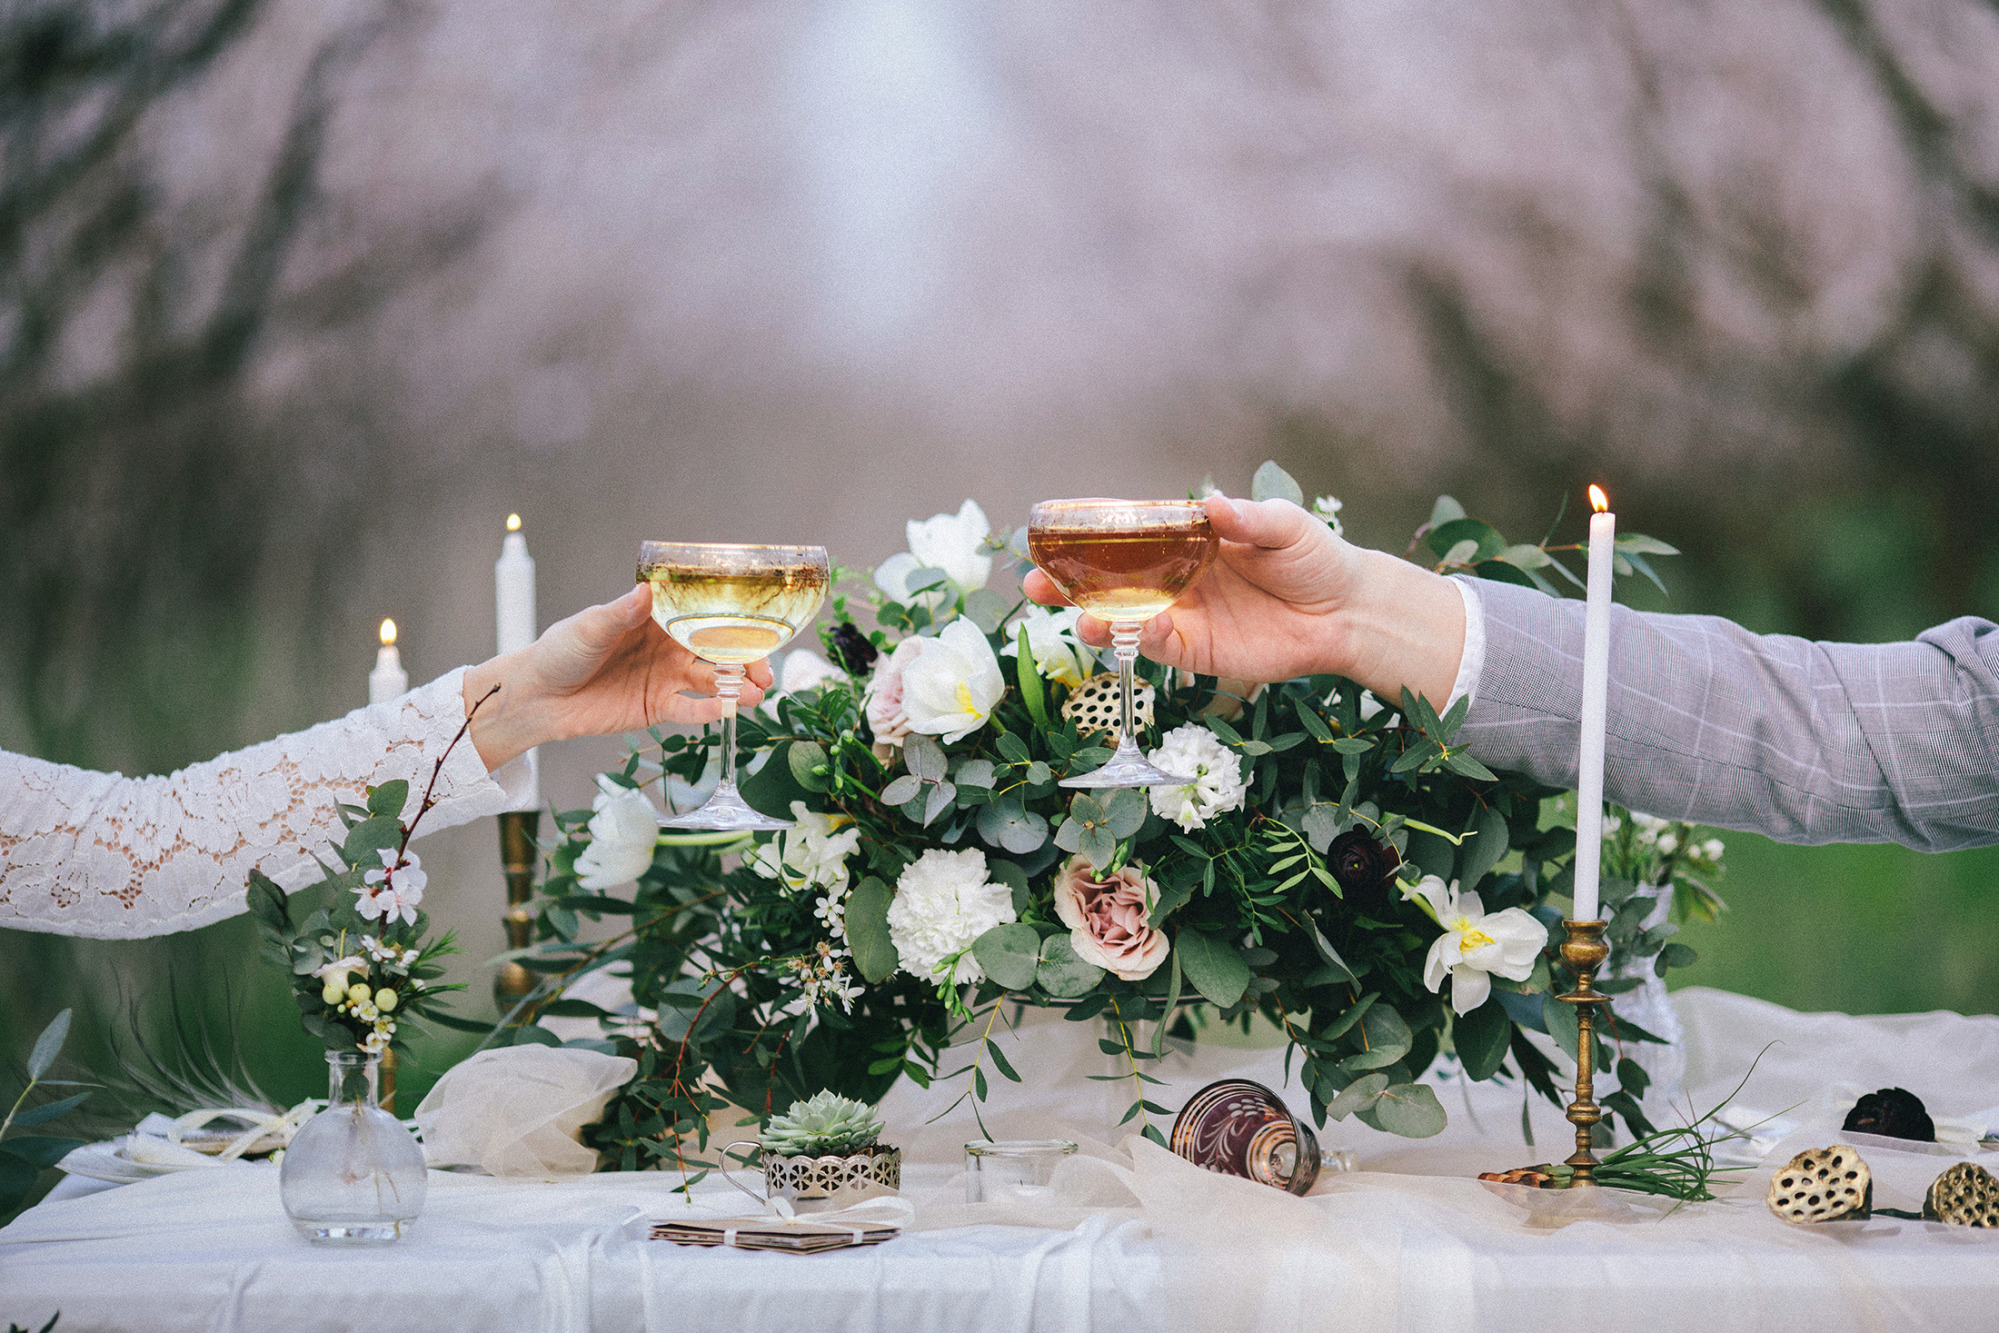 d2475b789f Being a Wedding Guest Could Cost You Thousands - Bloomberg